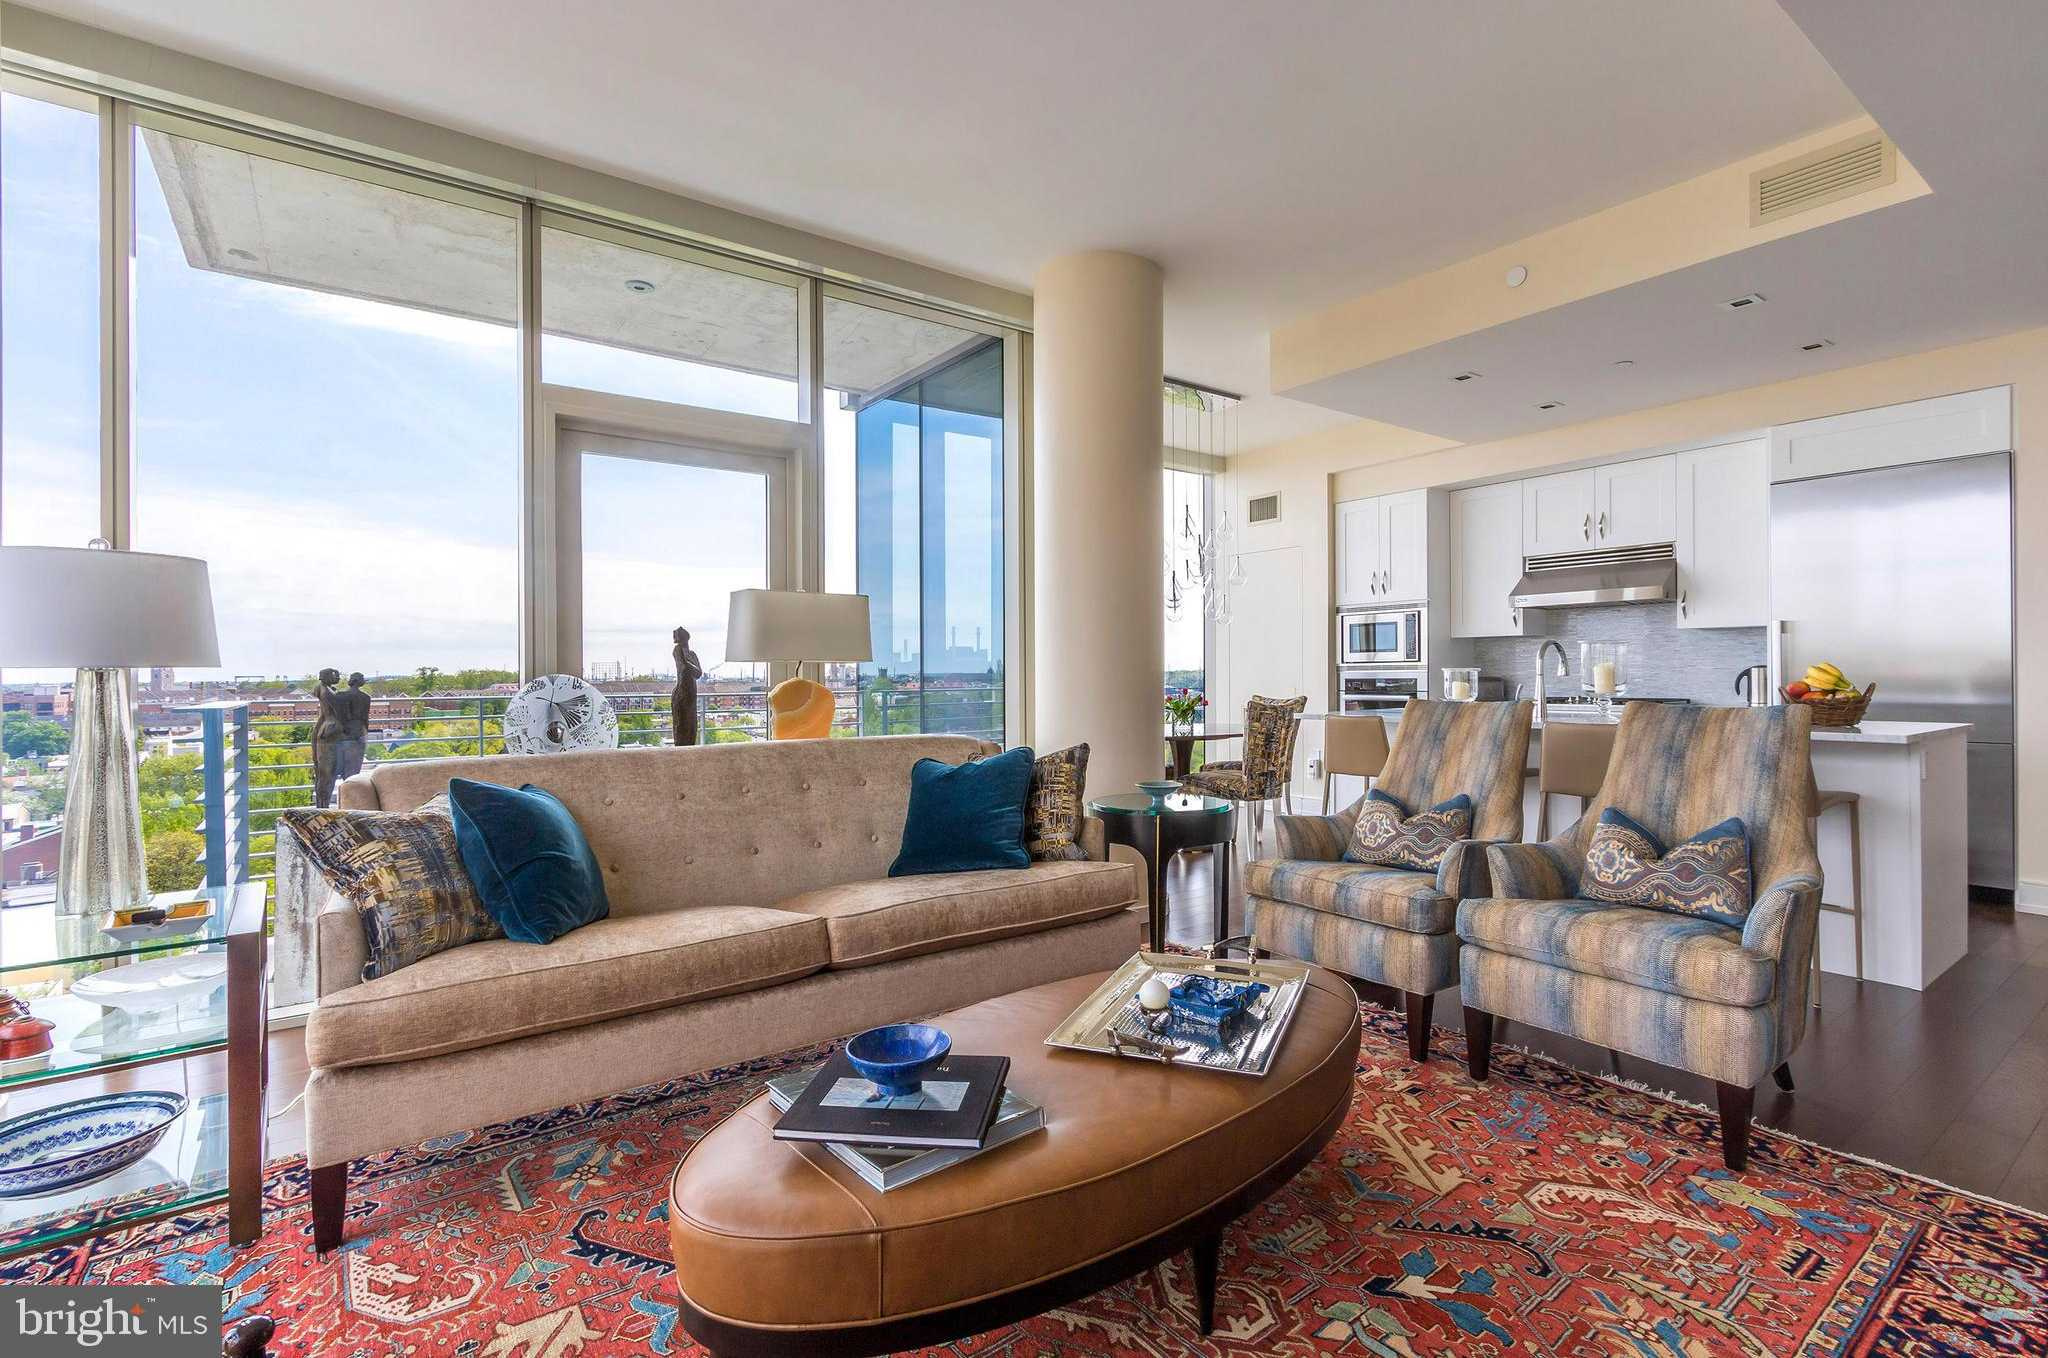 $1,275,000 - 2Br/2Ba -  for Sale in None Available, Philadelphia